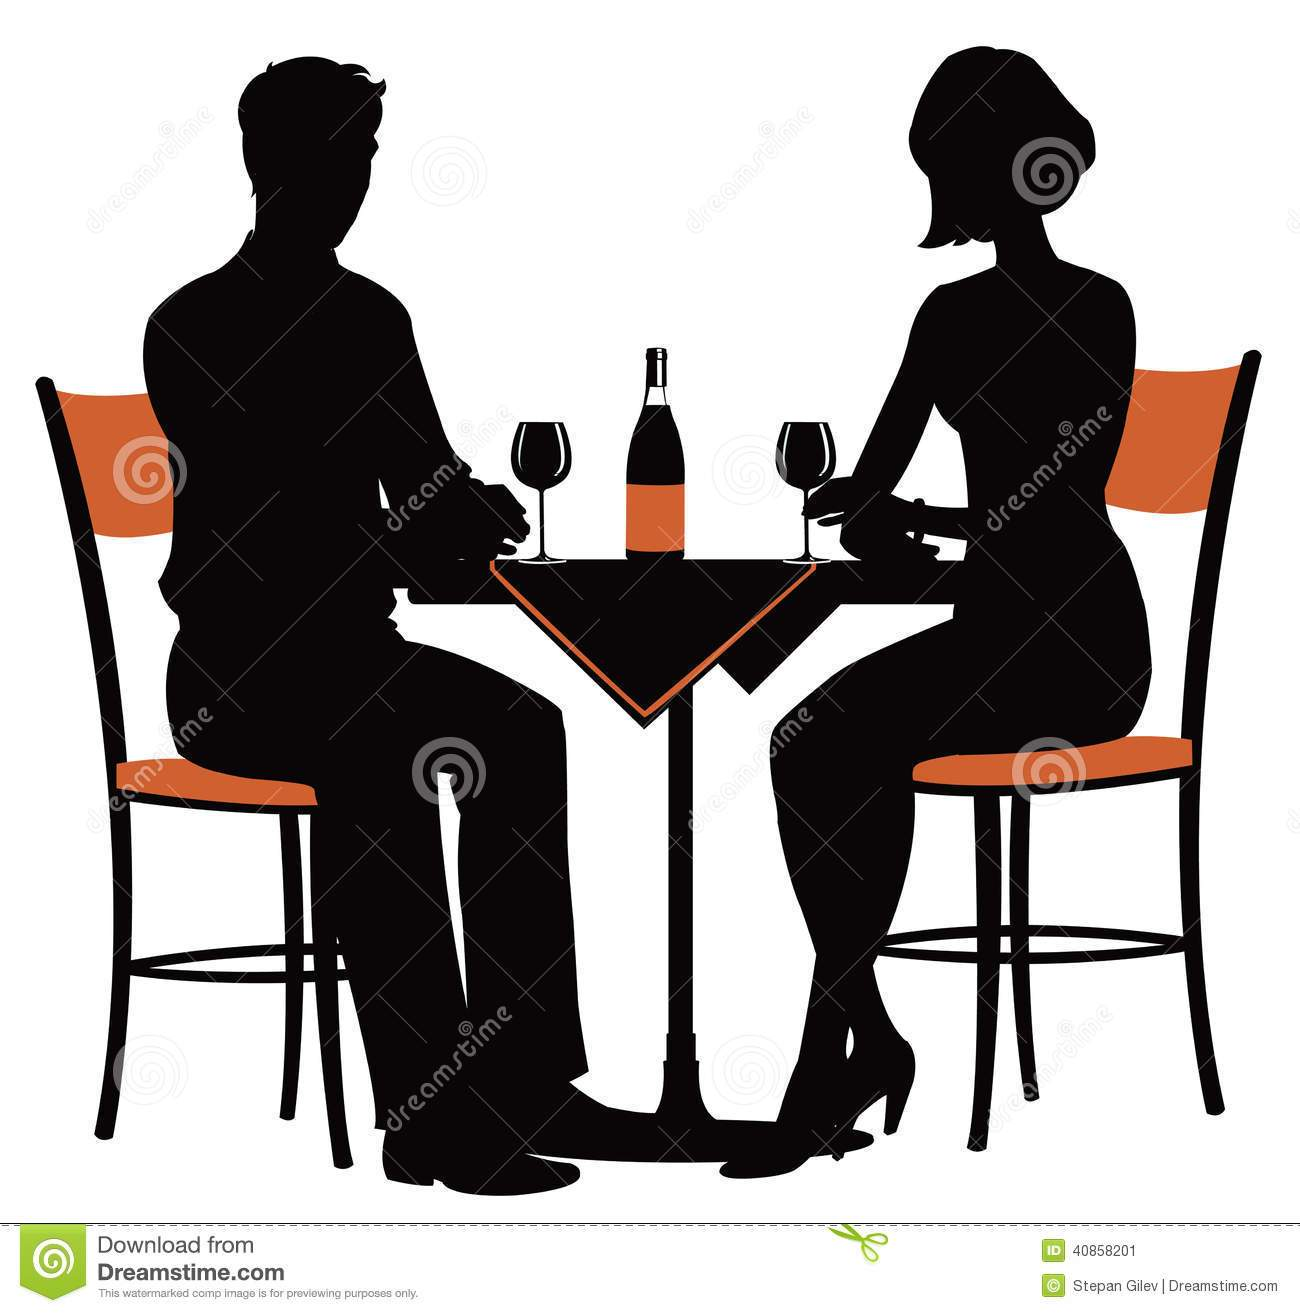 Dinner date clipart image download Romantic dinner date clipart 1 » Clipart Portal image download